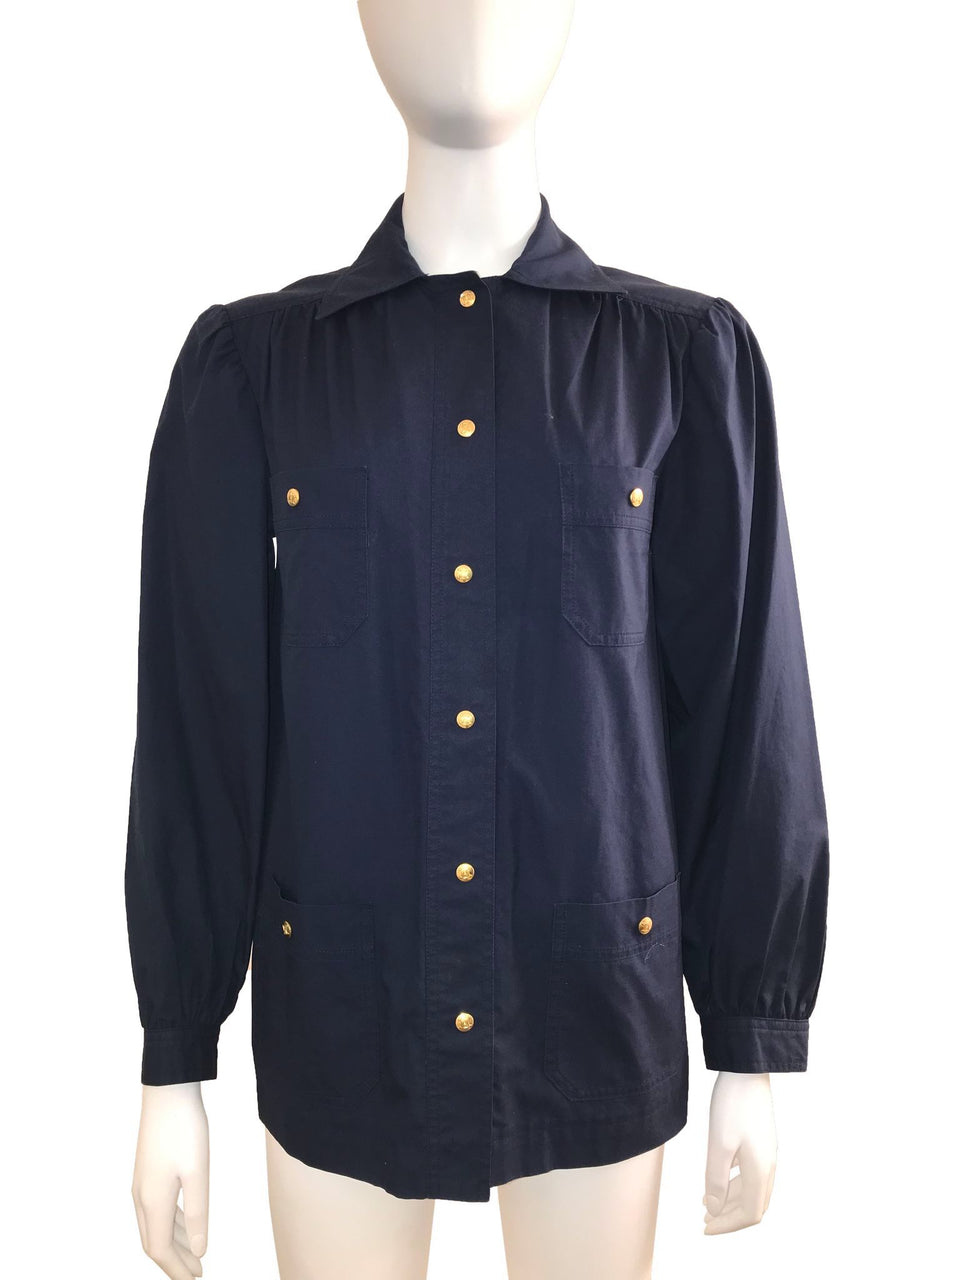 Vintage Navy Blue Cotton Shirt